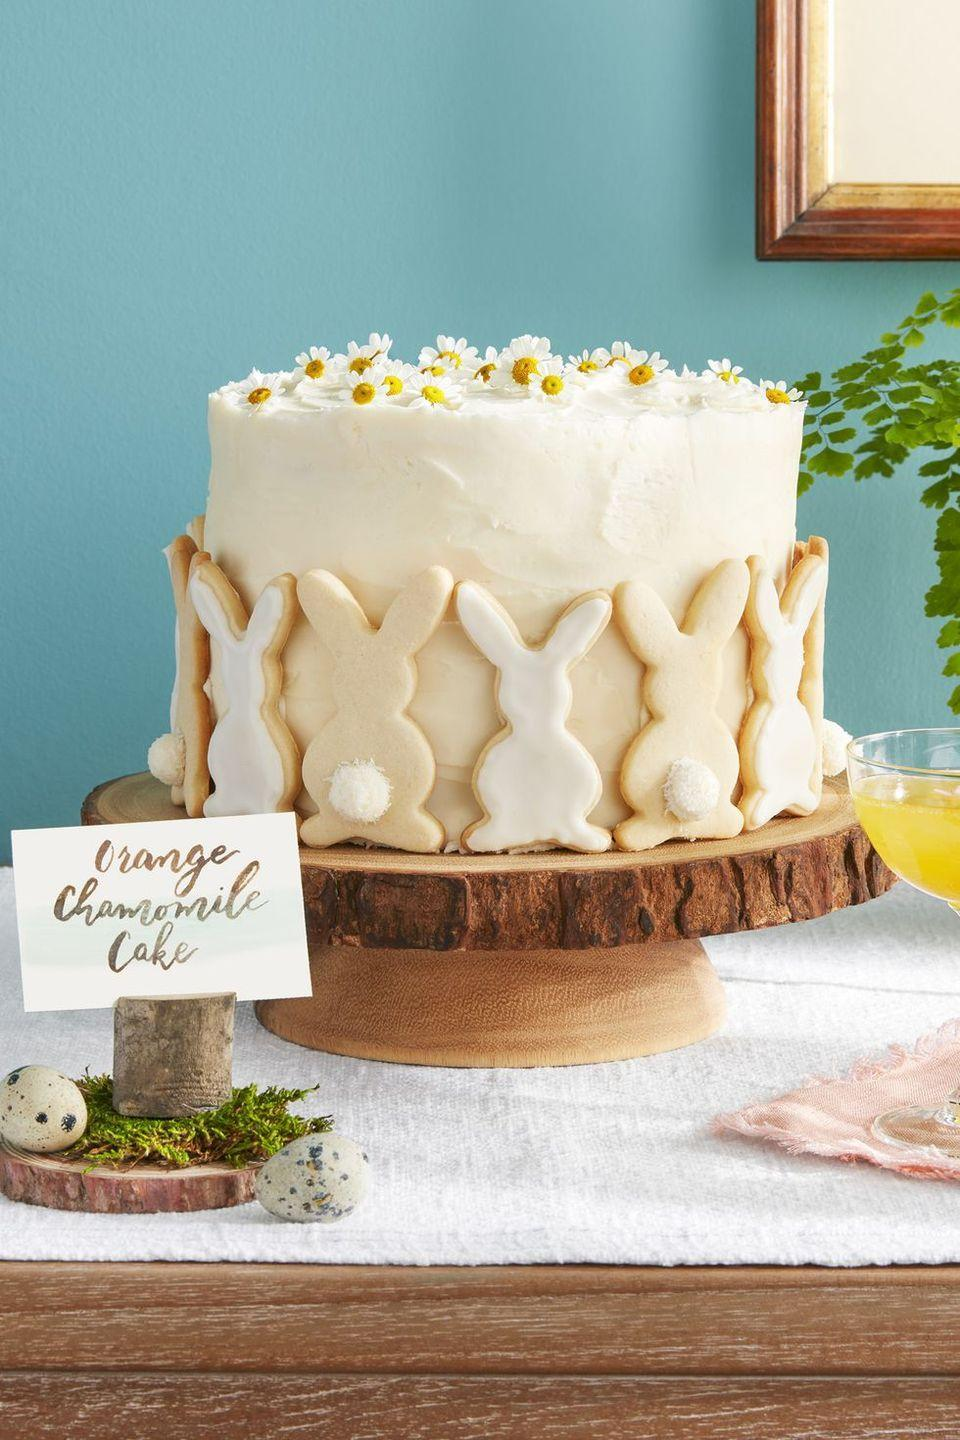 "<p>Dress this citrus layer cake with bunny sugar cookies and fresh daisies. </p><p><a class=""link rapid-noclick-resp"" href=""https://www.amazon.com/Easter-Bunny-Cookie-Cutter-Plated/dp/B079Q5Y5KZ/?tag=syn-yahoo-20&ascsubtag=%5Bartid%7C10055.g.4156%5Bsrc%7Cyahoo-us"" rel=""nofollow noopener"" target=""_blank"" data-ylk=""slk:SHOP BUNNY COOKIE CUTTERS"">SHOP BUNNY COOKIE CUTTERS</a></p><p><em><a href=""https://www.countryliving.com/food-drinks/a19041891/orange-chamomile-cake-recipe/"" rel=""nofollow noopener"" target=""_blank"" data-ylk=""slk:Get the recipe from Country Living »"" class=""link rapid-noclick-resp"">Get the recipe from Country Living »</a></em></p>"